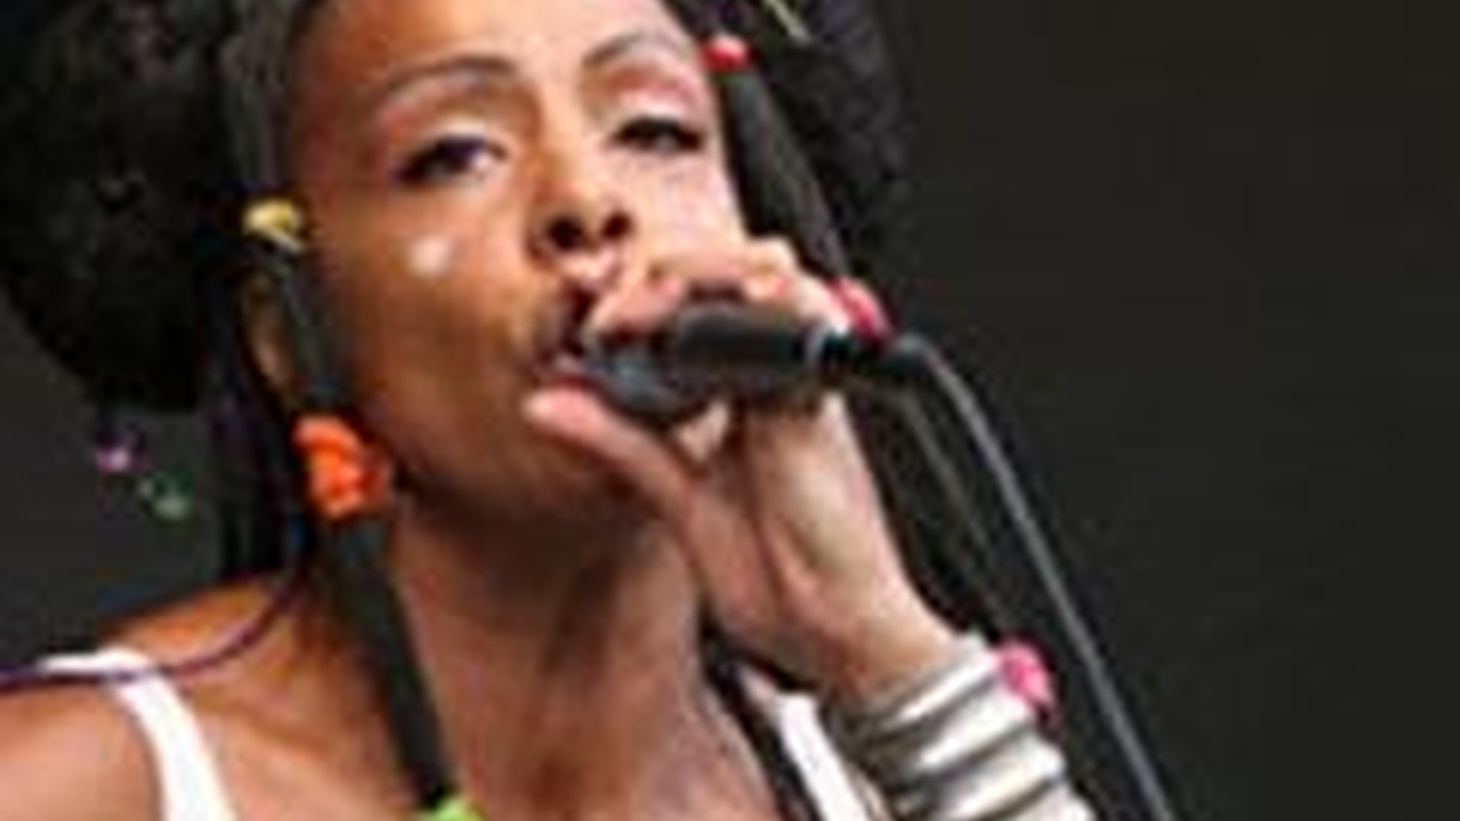 World music divas Zap Mama return to perform on Morning Becomes Eclectic at 11:15am. Click Here to Watch!